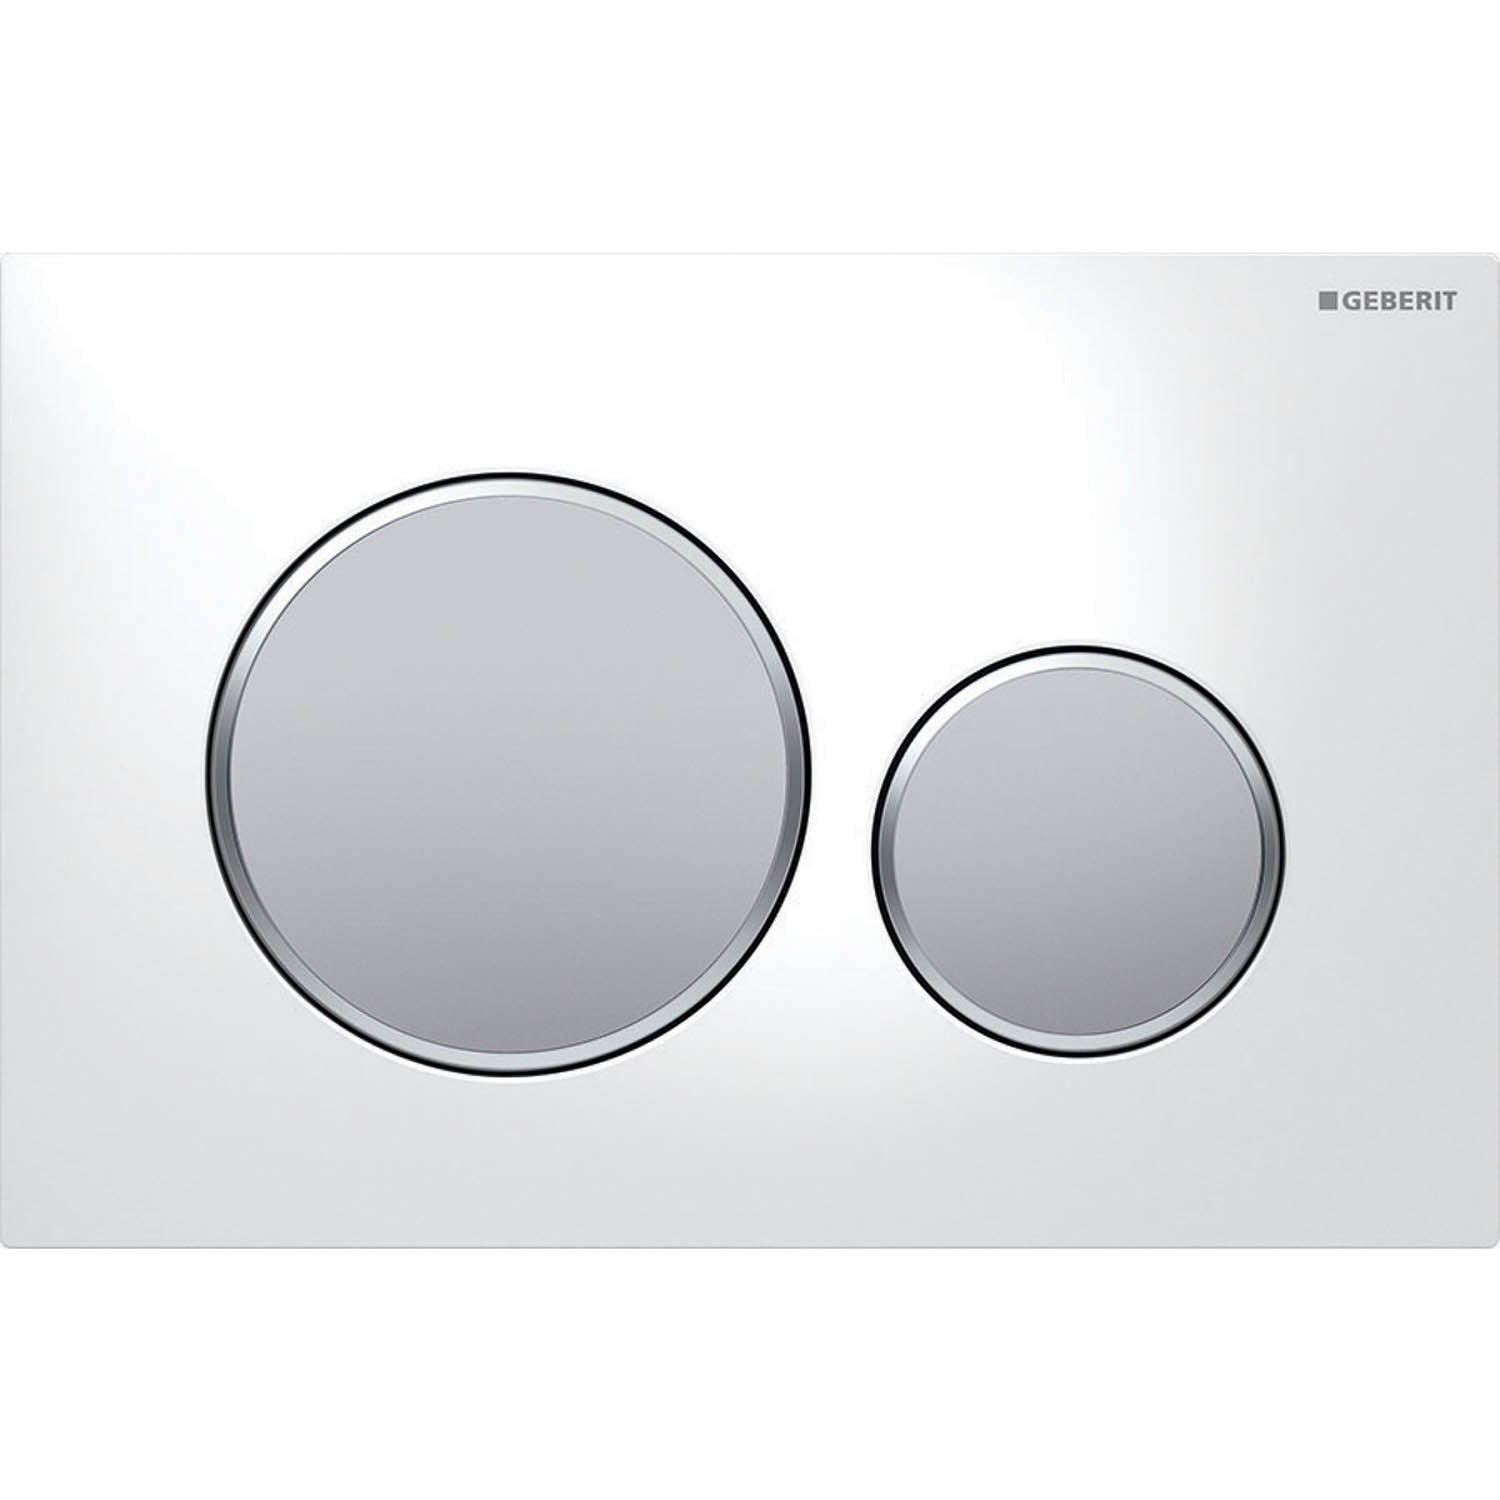 Sigma Round Dual Action Flush Plate with a white and matt chrome finish on a white background